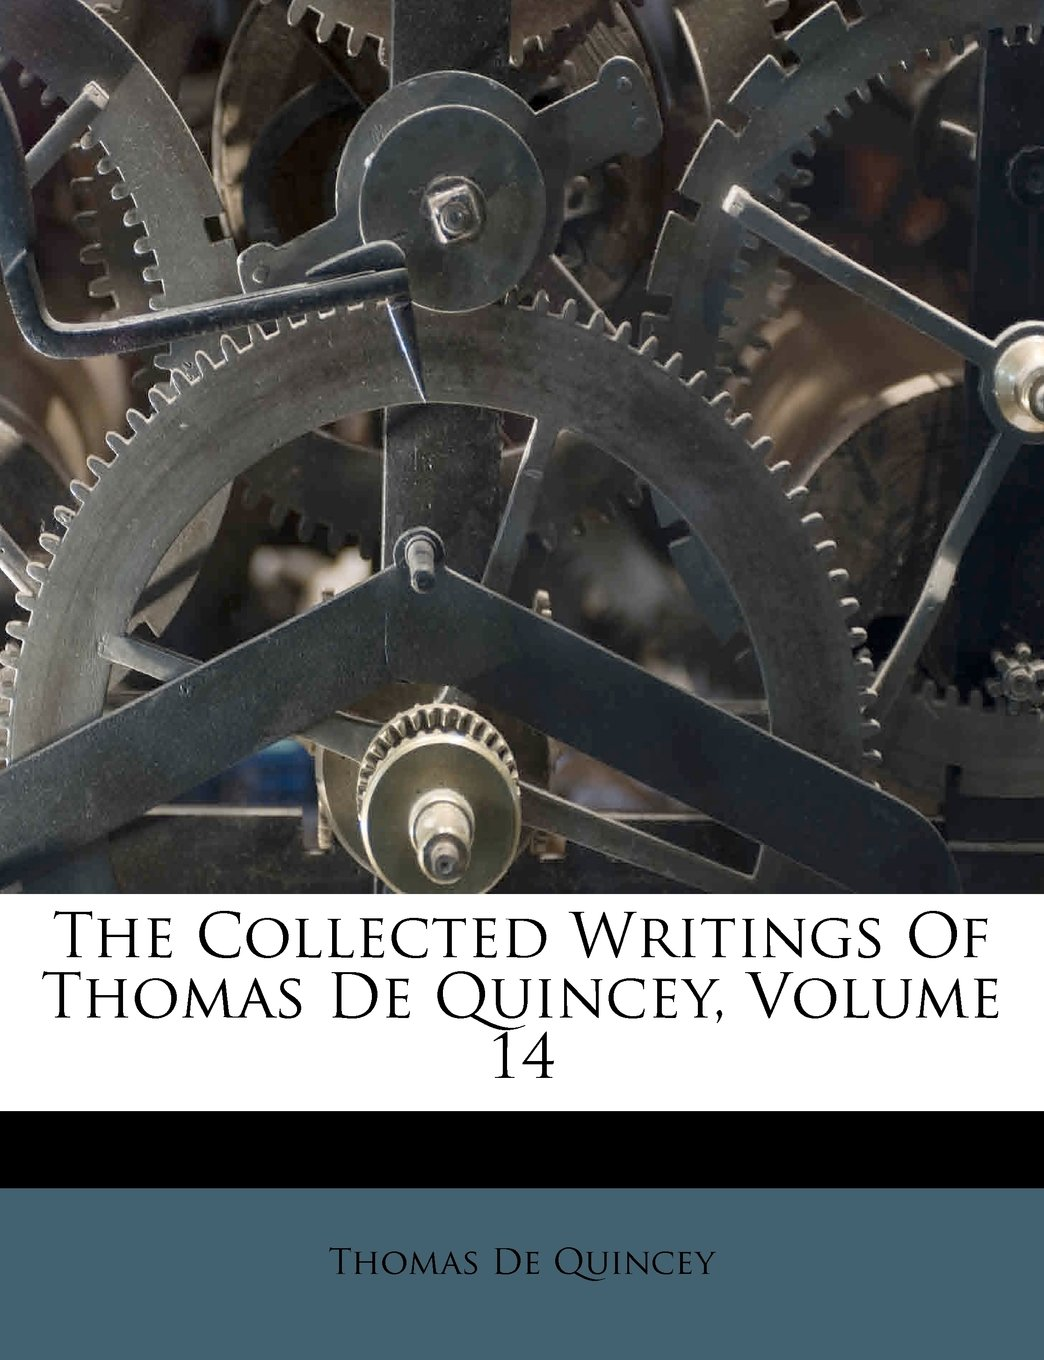 Read Online The Collected Writings Of Thomas De Quincey, Volume 14 pdf epub